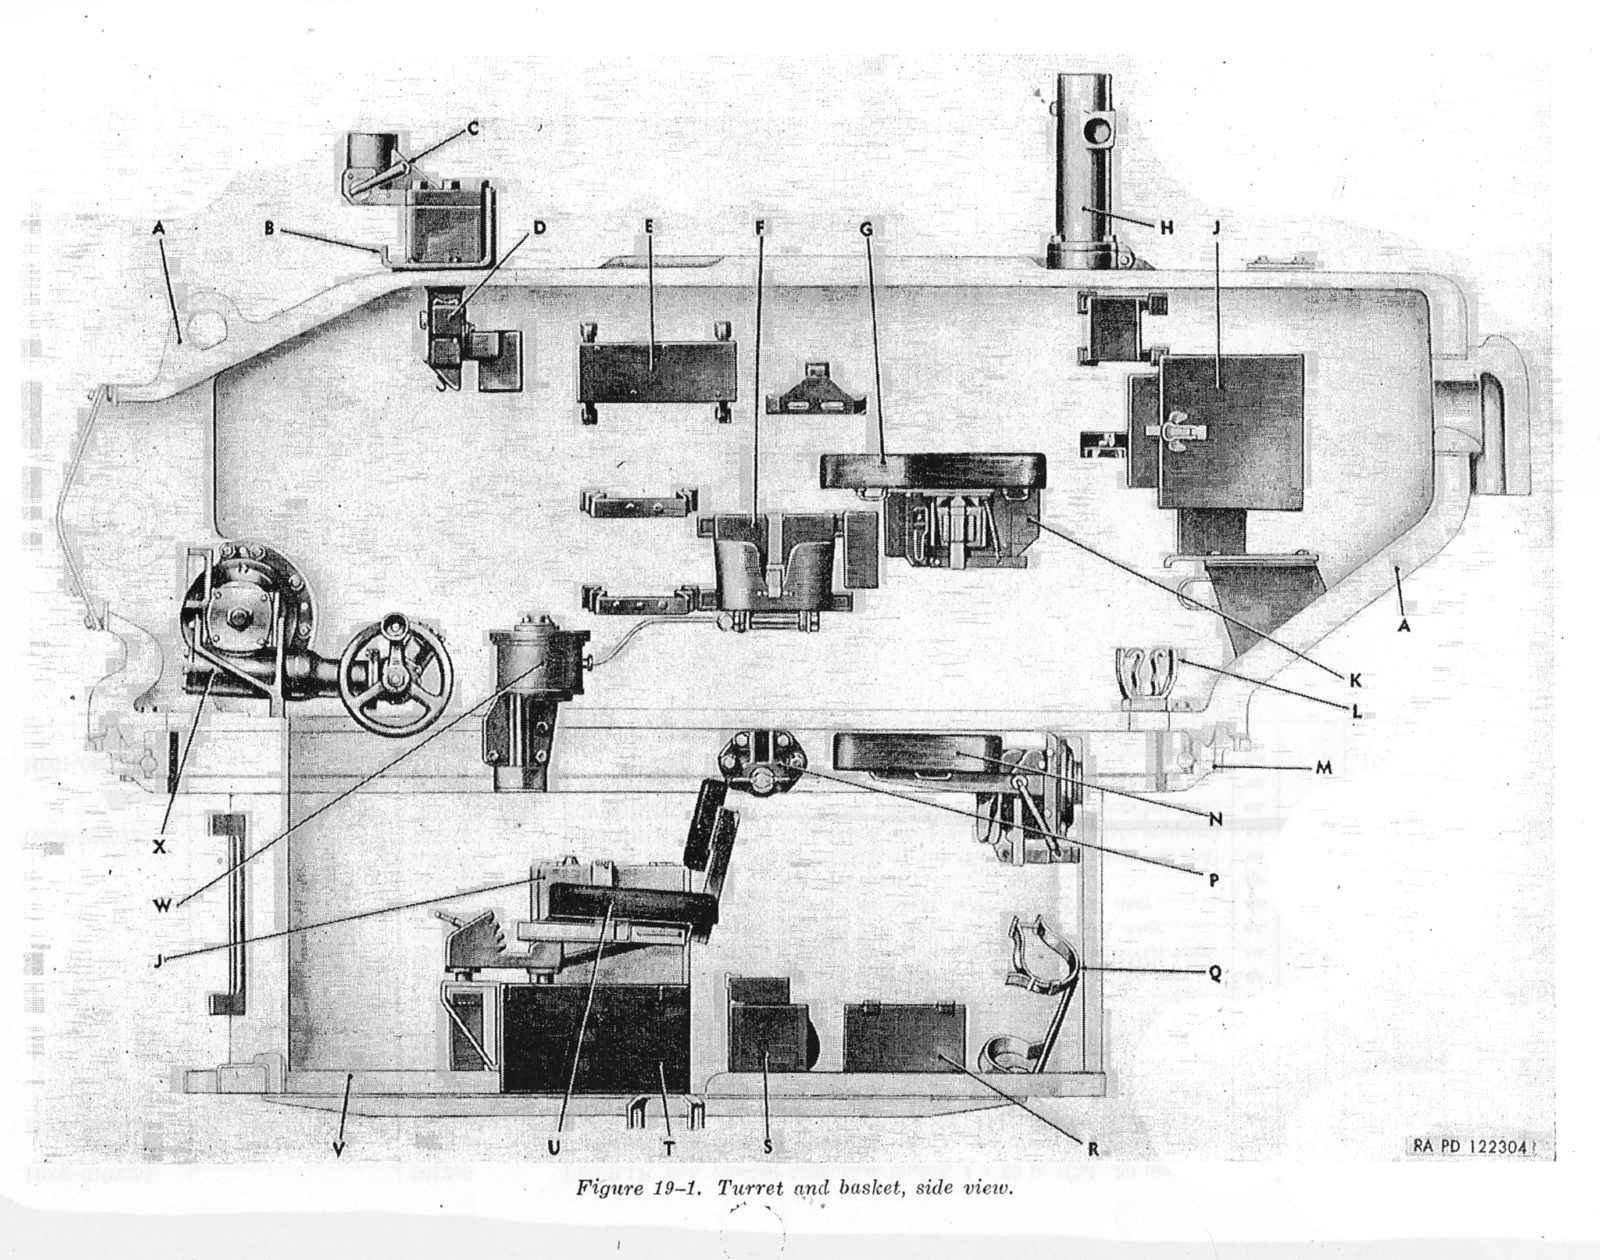 f19-1-TURRET-AND-BASKET-SIDE-VIEW-IMPROV